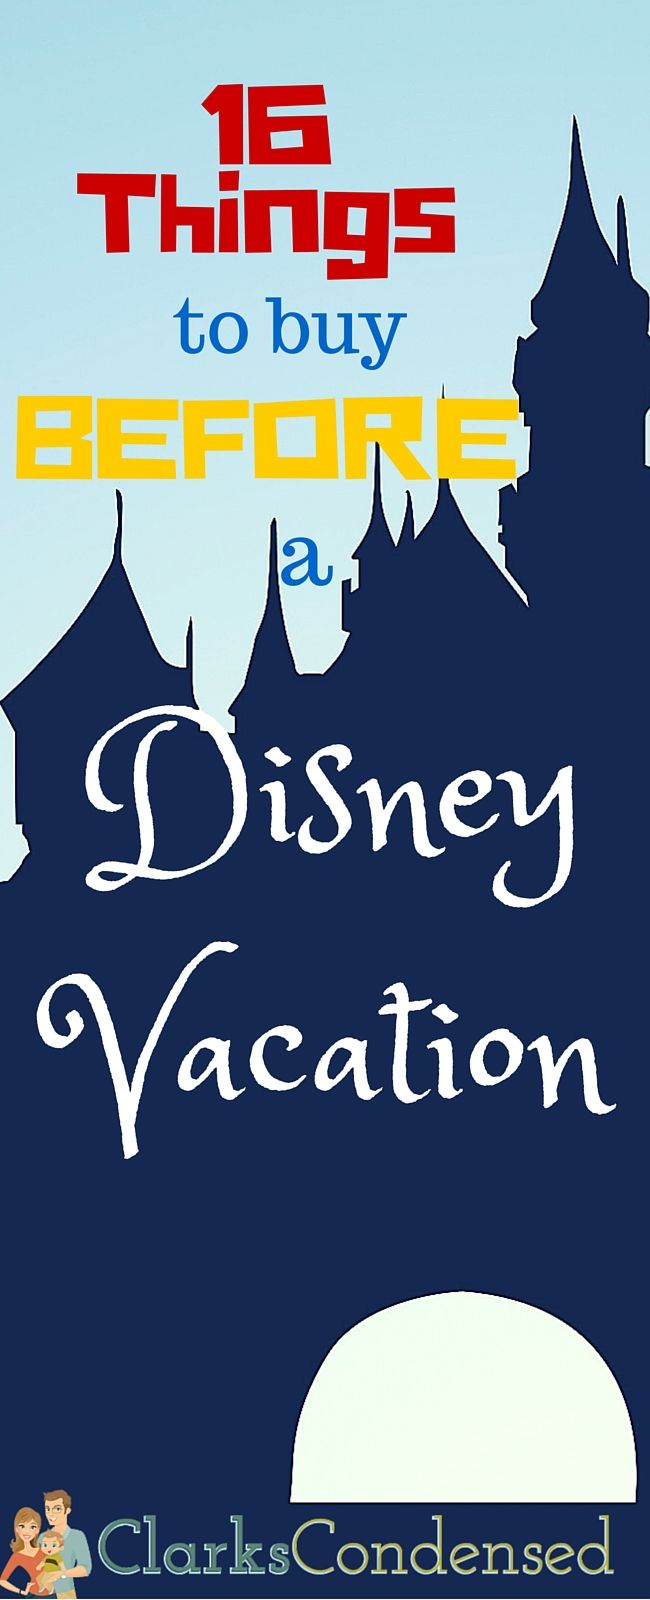 Are you going on a Disney vacation? Then you HAVE to make sure you consider buying these things before you go! It will make for a much more fun and a cheaper Disney vacation.